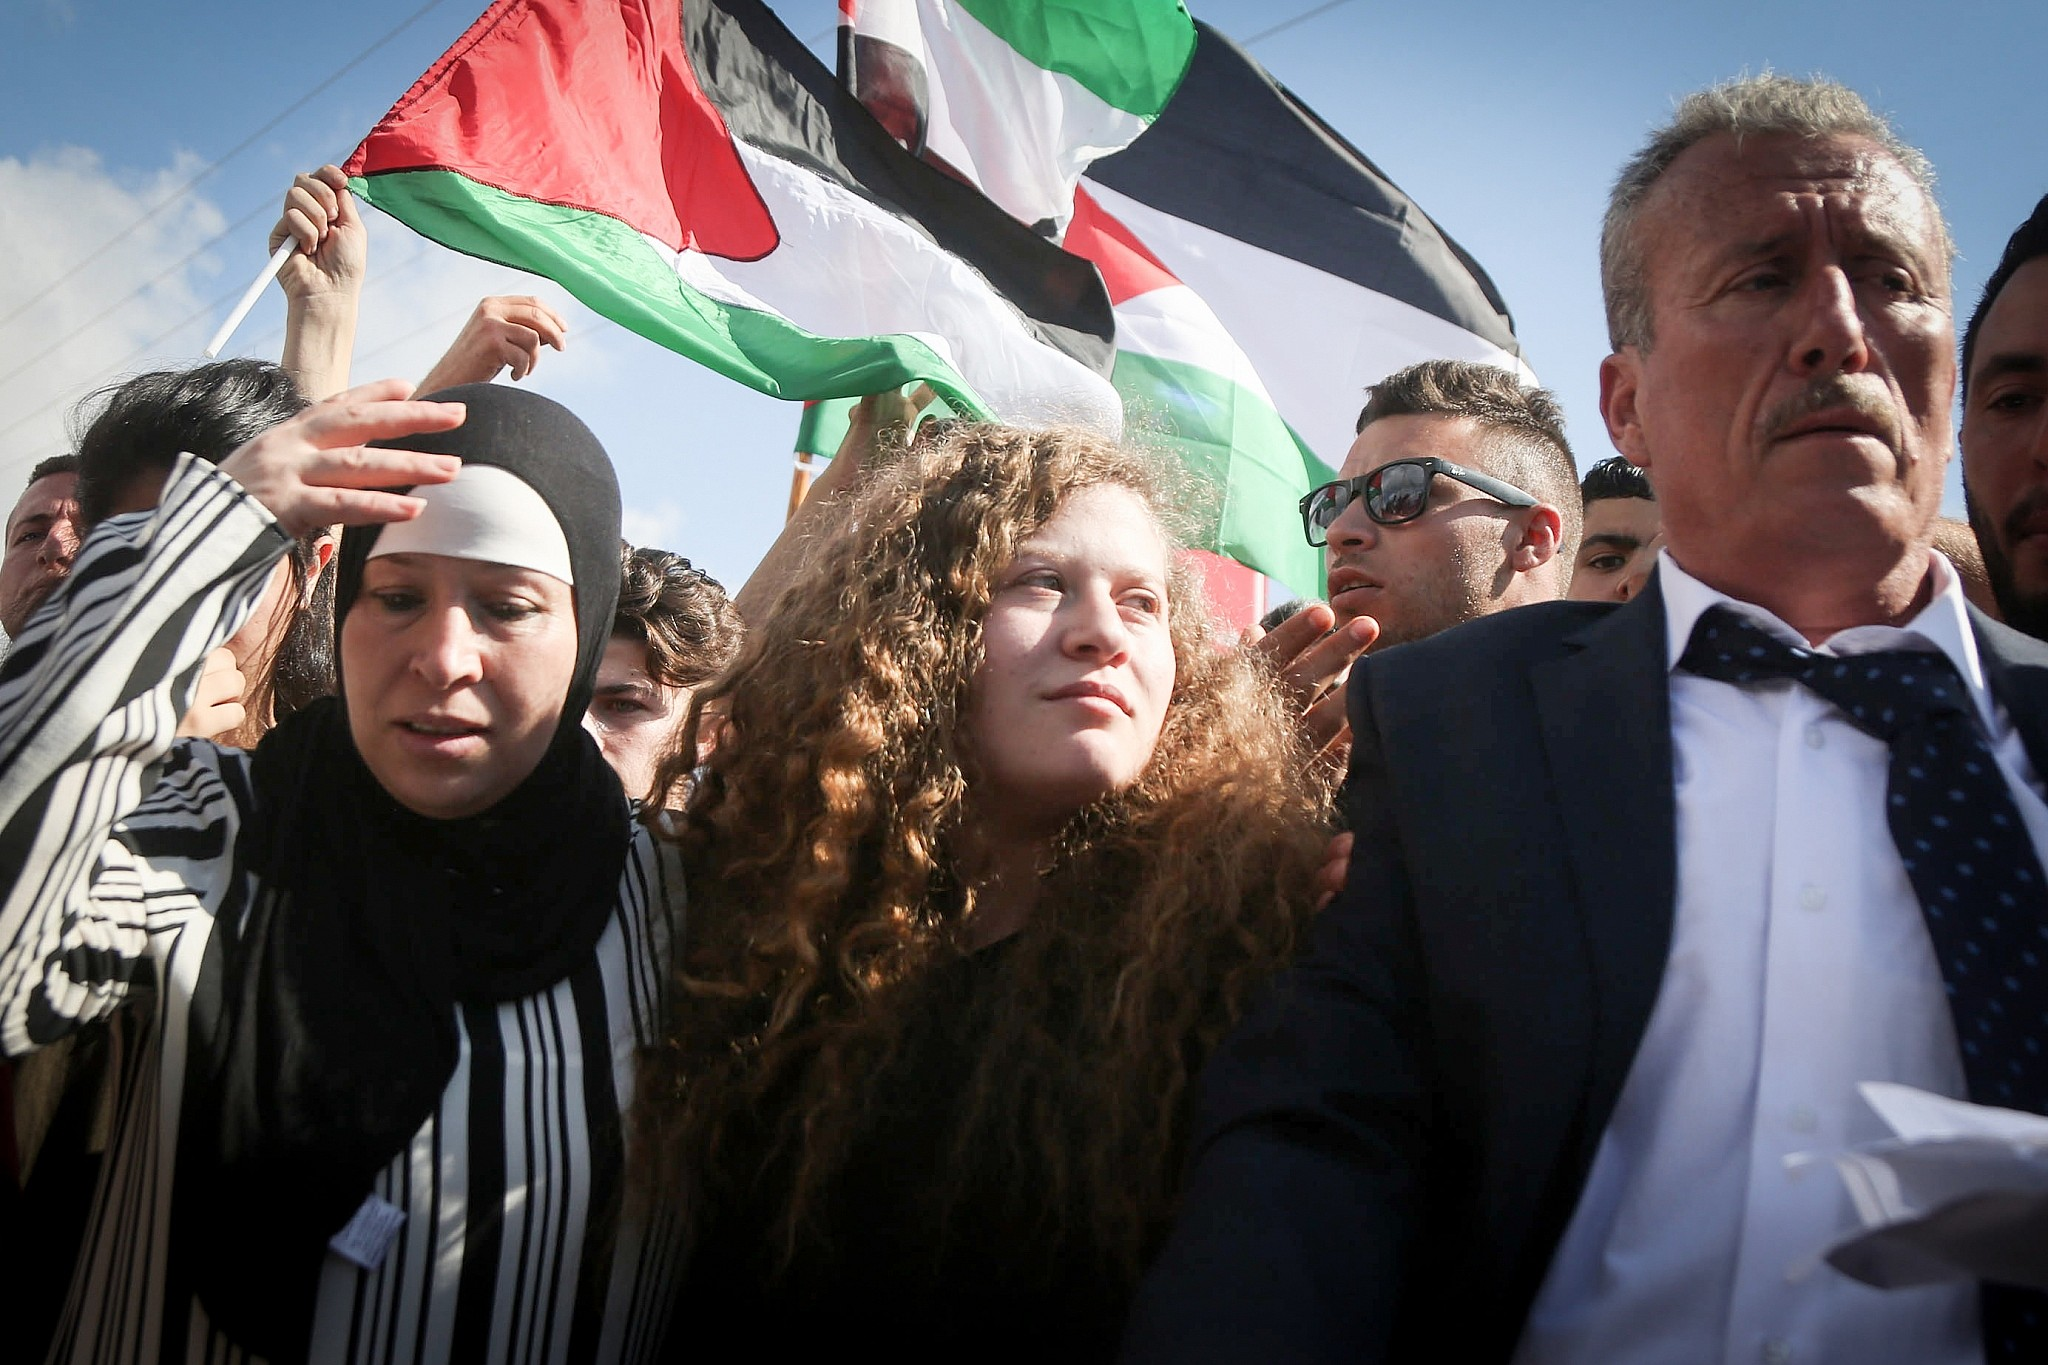 Hamas congratulates Palestinian girl Ahed al-Tamimi on her release